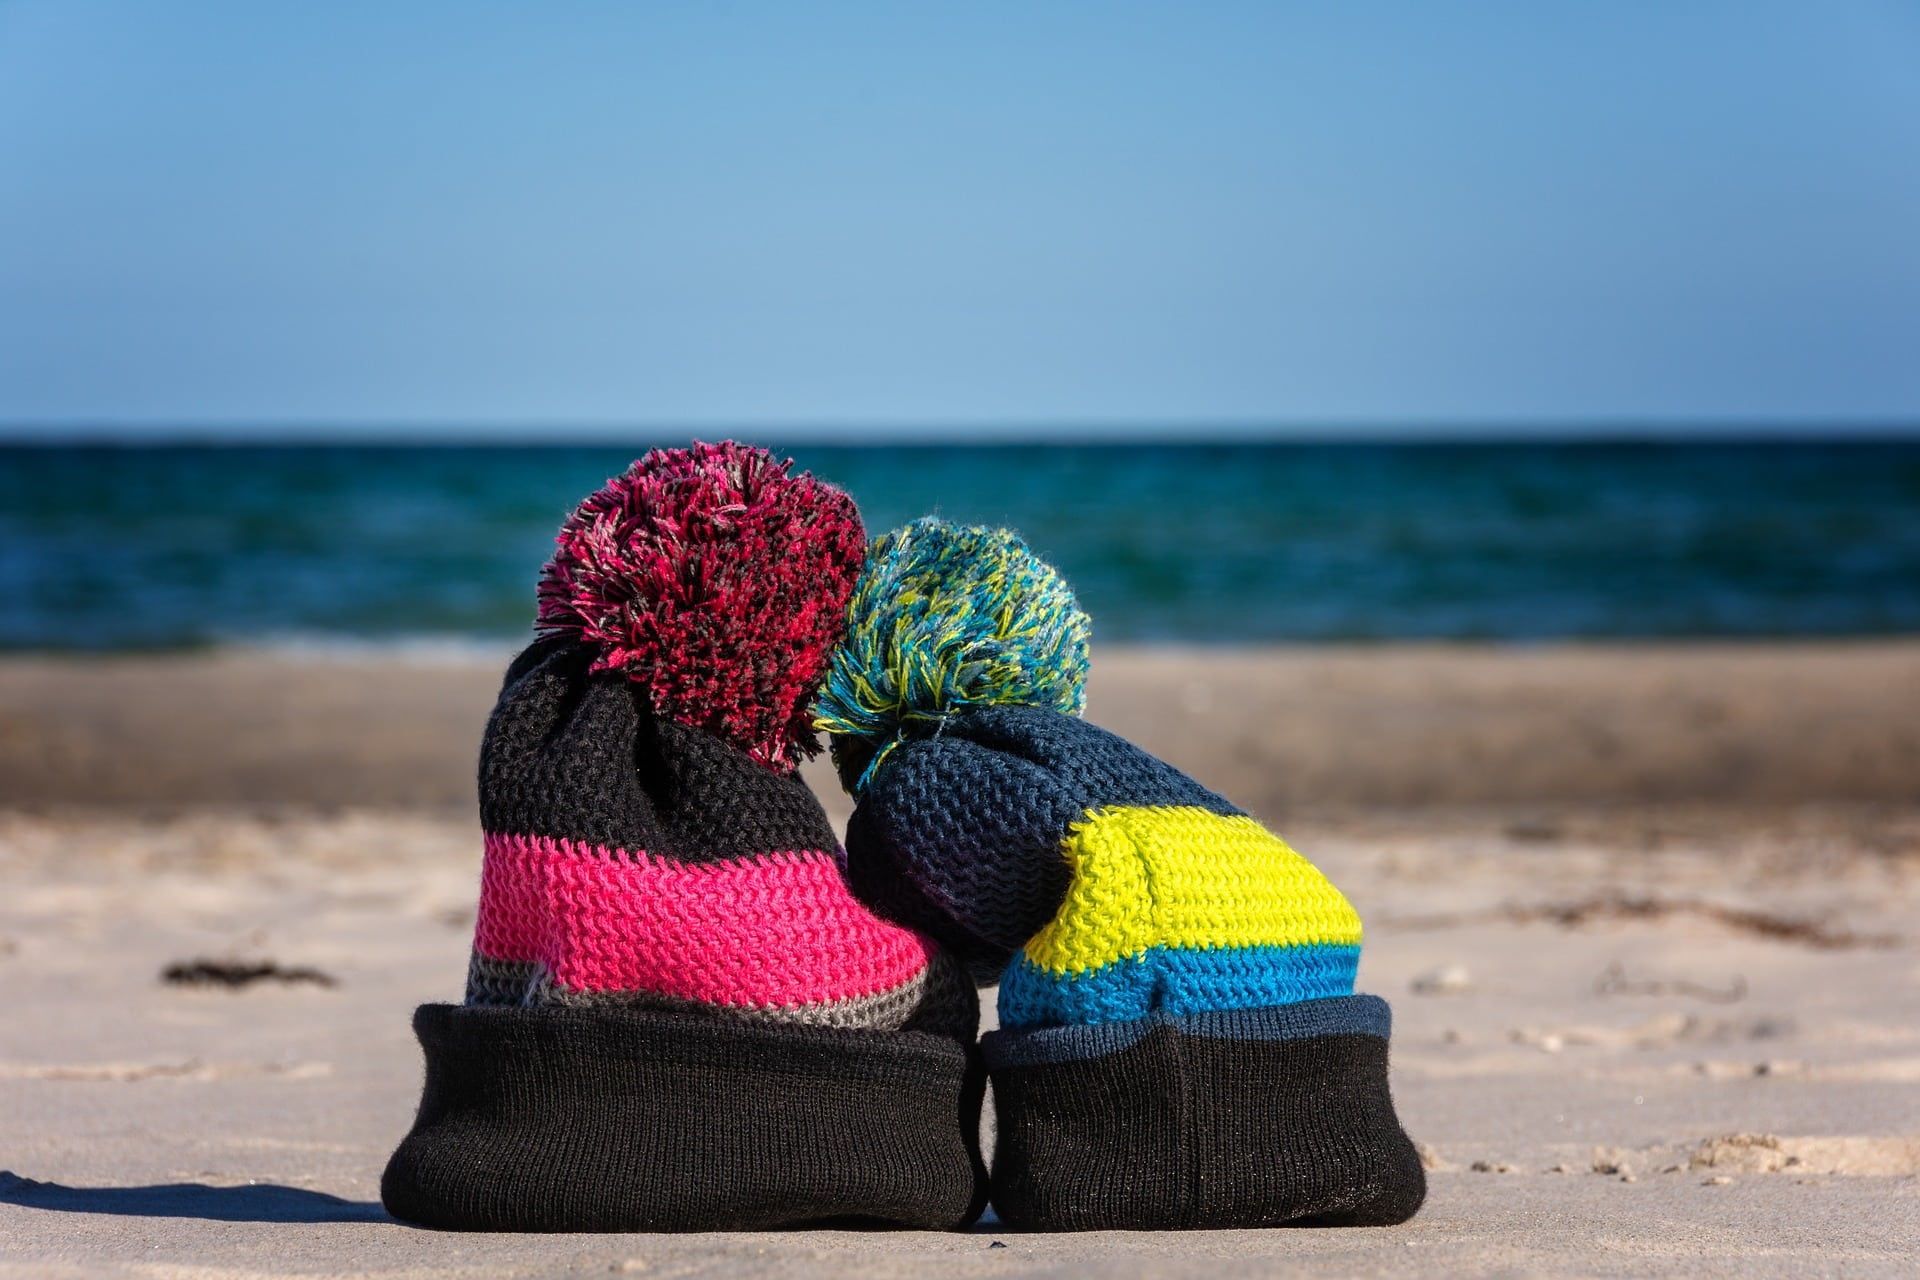 How long does it take to knit a hat?